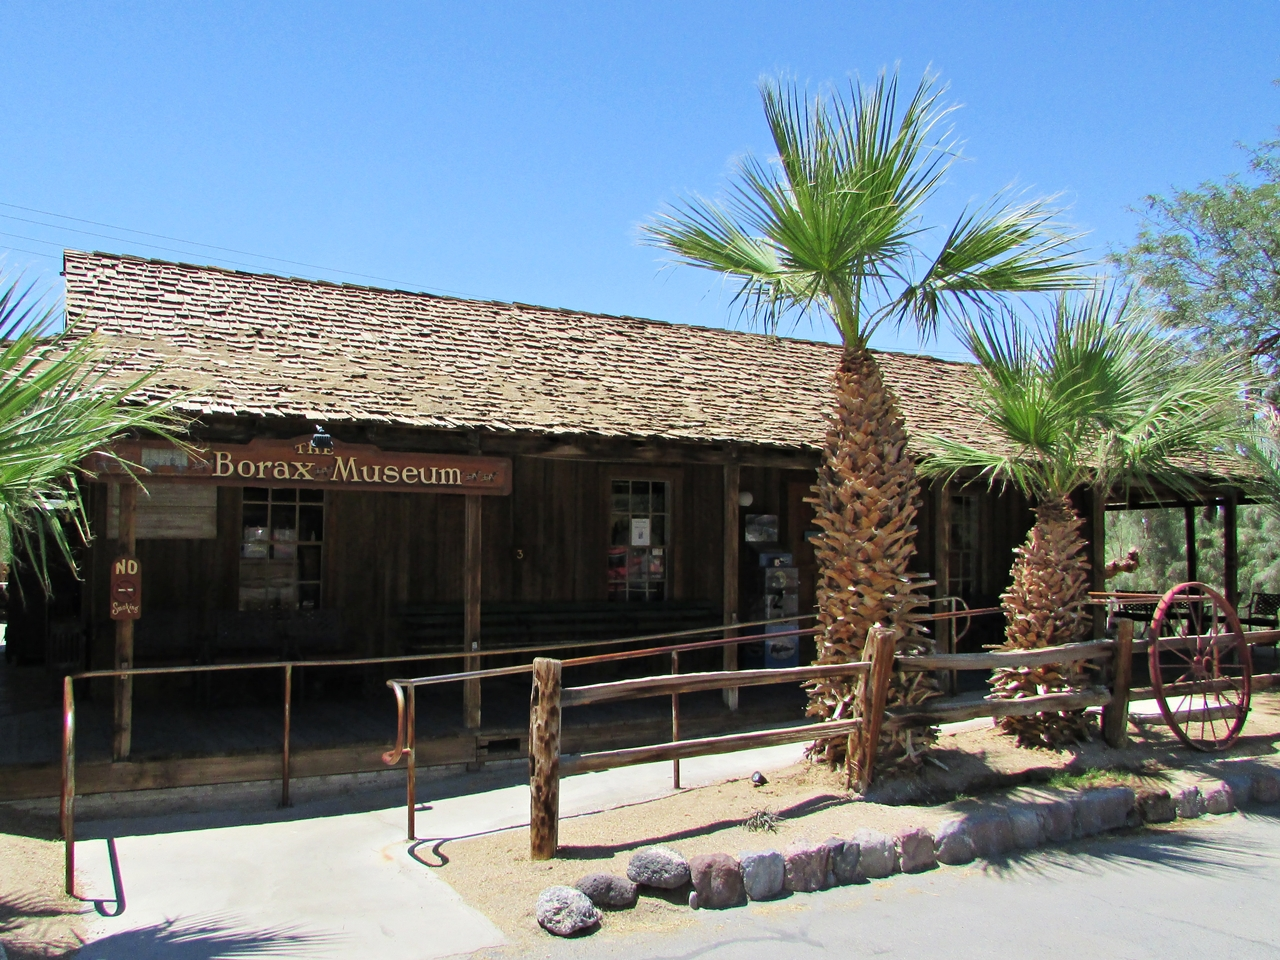 Westküste USA Rundreise - Death Valley Furnance Creek Borax Mine Museum - Fashionladyloves